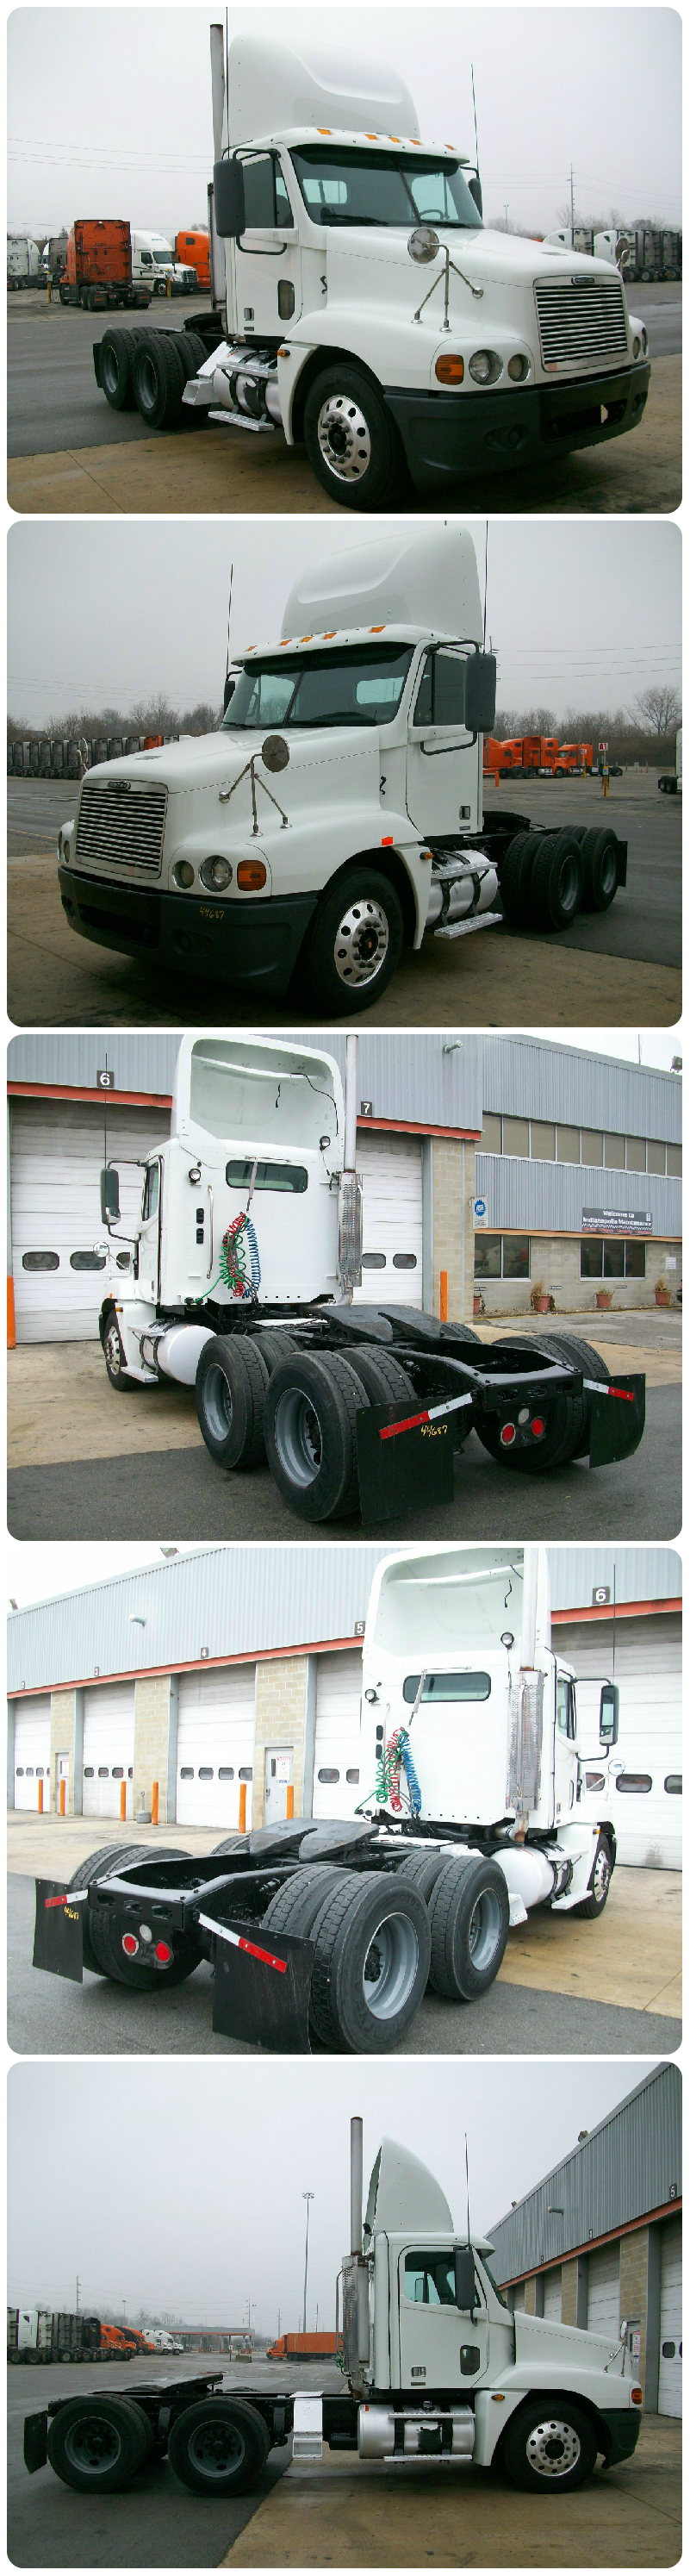 Clearance Sale 06 Freightliner C120 Day Cab W 559k Miles Was 37 500 Now 31 875 Save 5 625 Http Used Trucks Freightliner Used Trailers For Sale